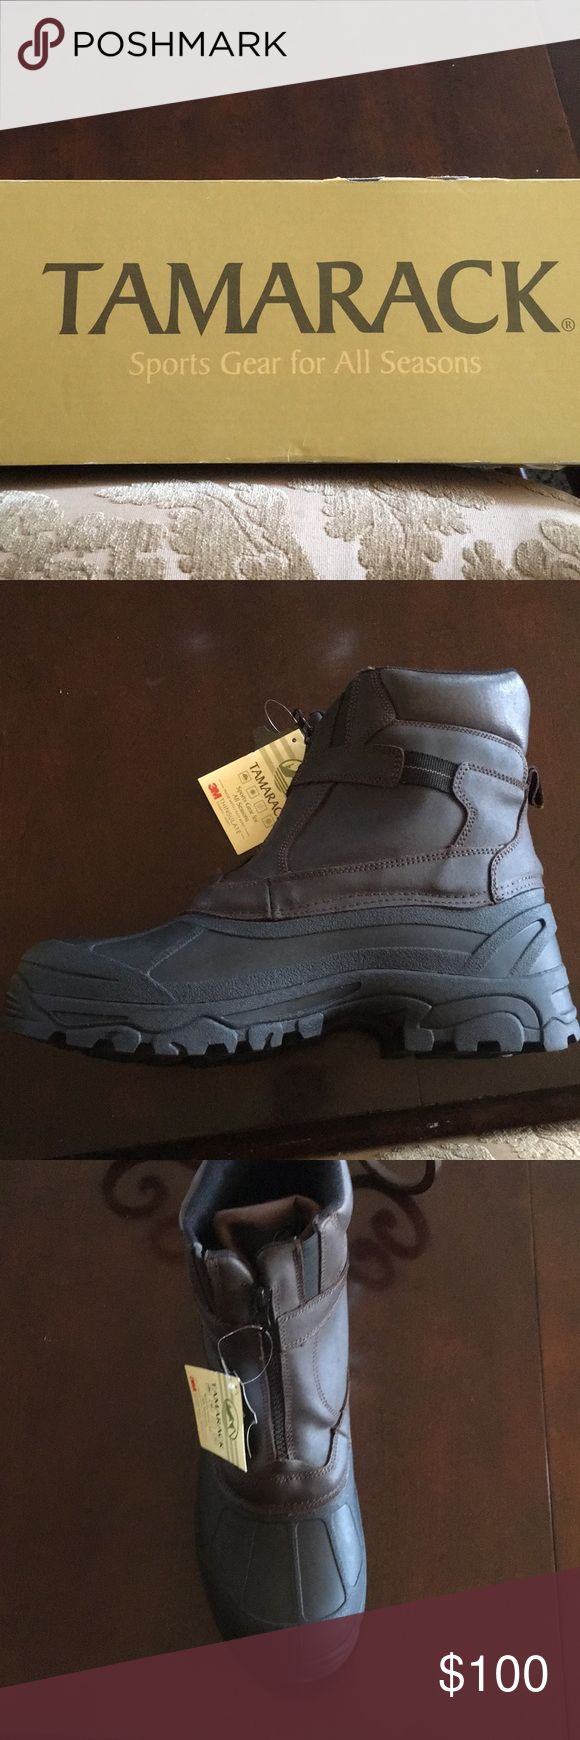 Tamarack Snow Boots Men's waterproof, insulated, leather snow boots Shoes Rain & Snow Boots